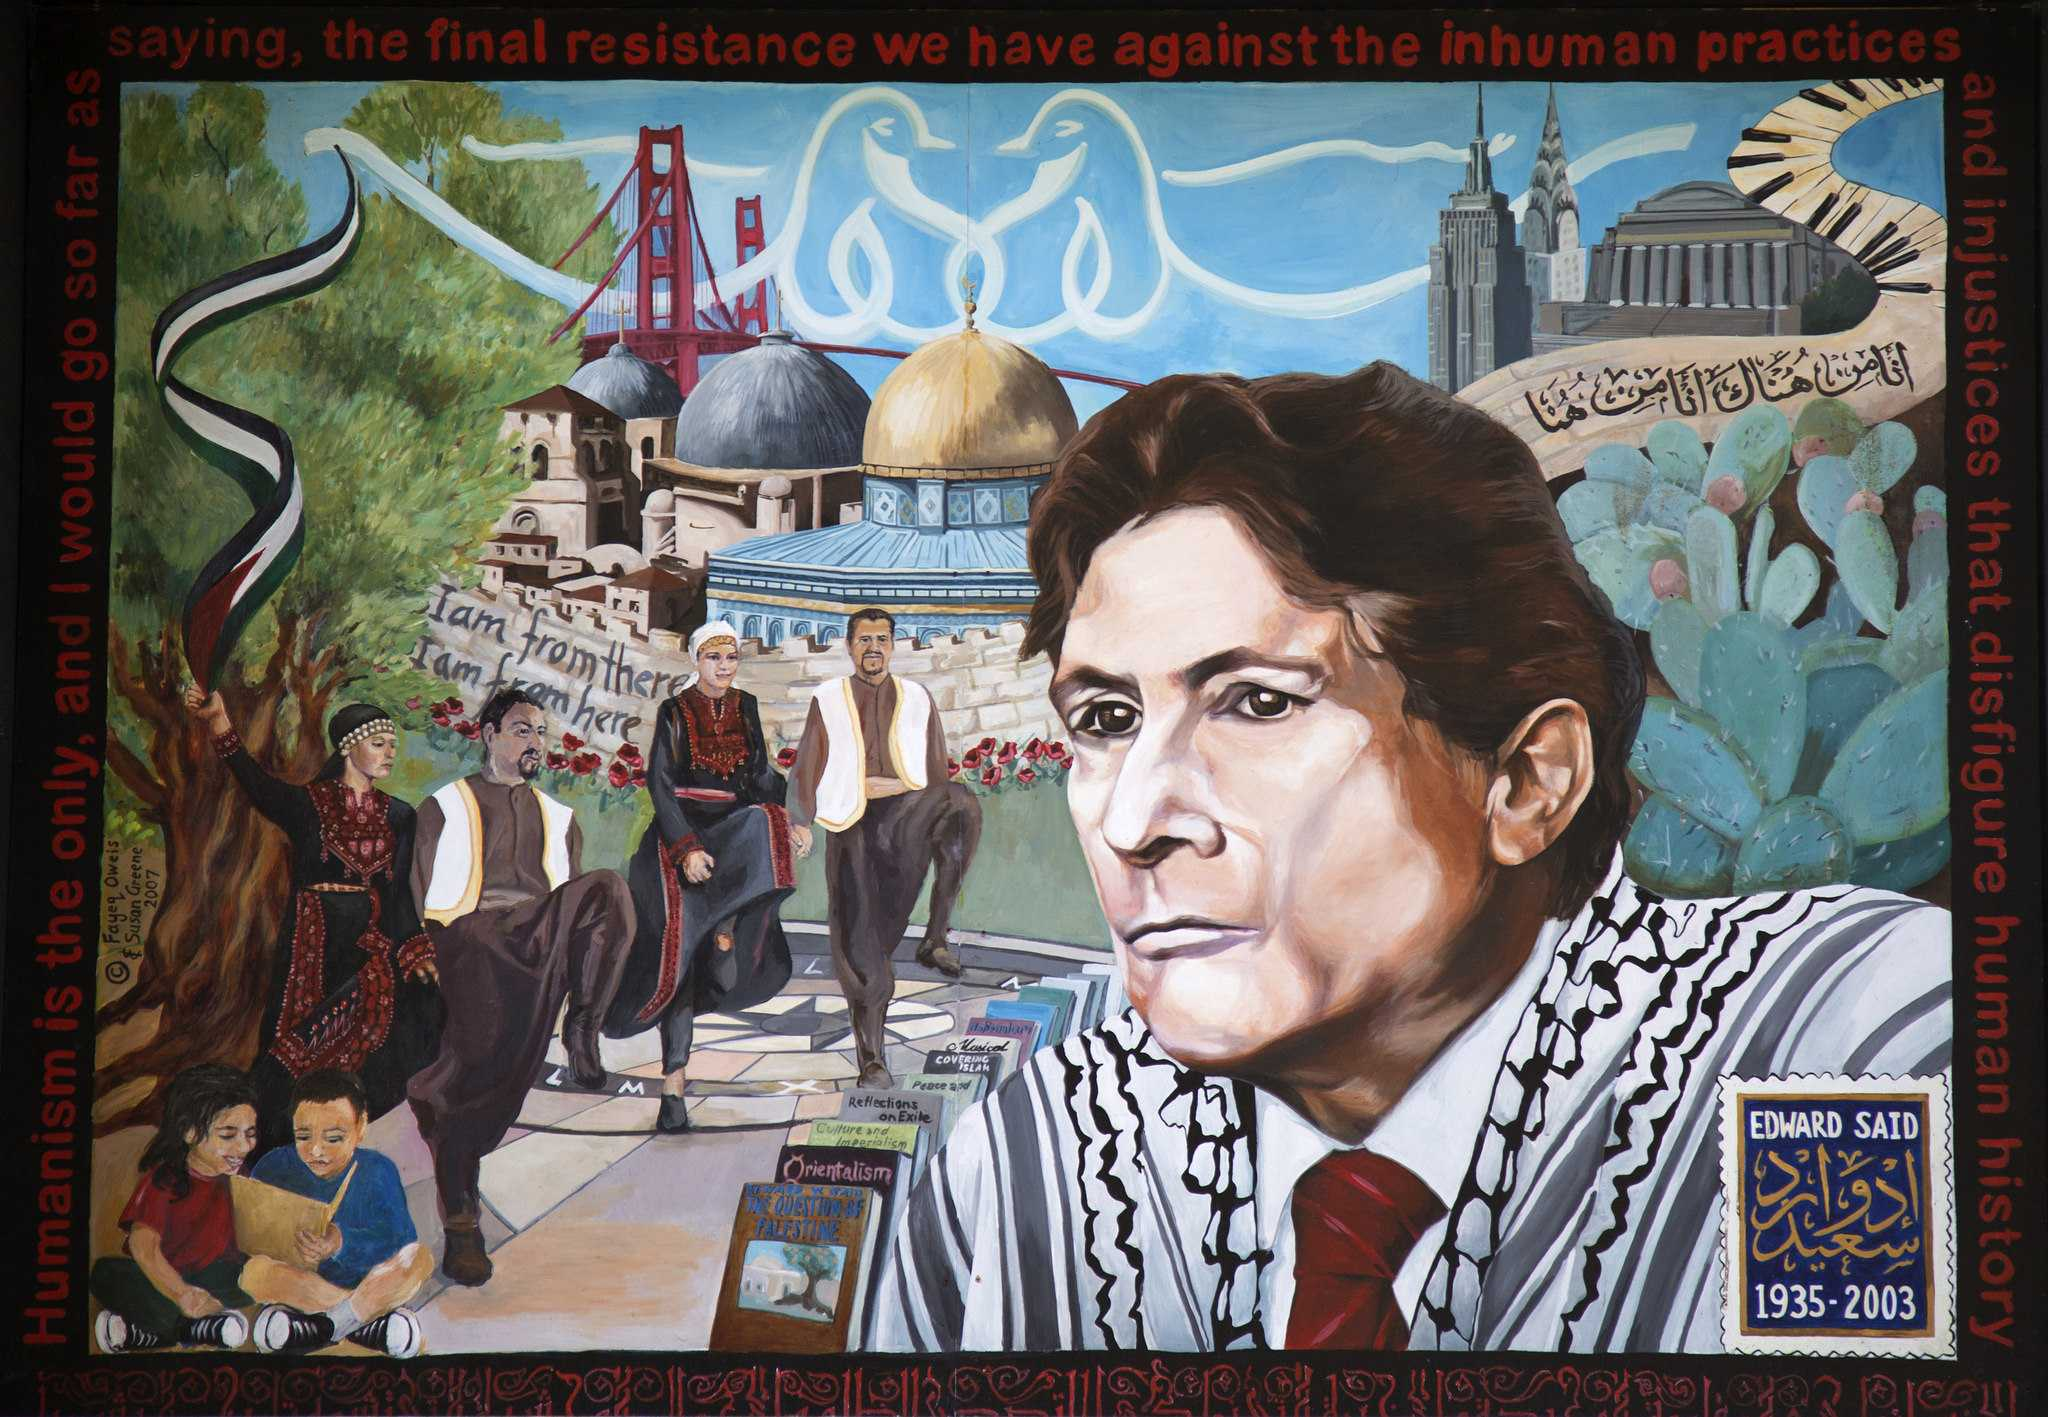 Palestinian Cultural Mural: Honoring Dr. Edward Said painted Fayeq Oweis & Susan Greene. The mural was dedicated on November 2, 2007, in honor of Dr. Edward Said's activism for human rights, justice, and a peaceful solution to the Palestinian-Israeli conflict inspired millions of people around the world. (Emma Chiang / Xpress)